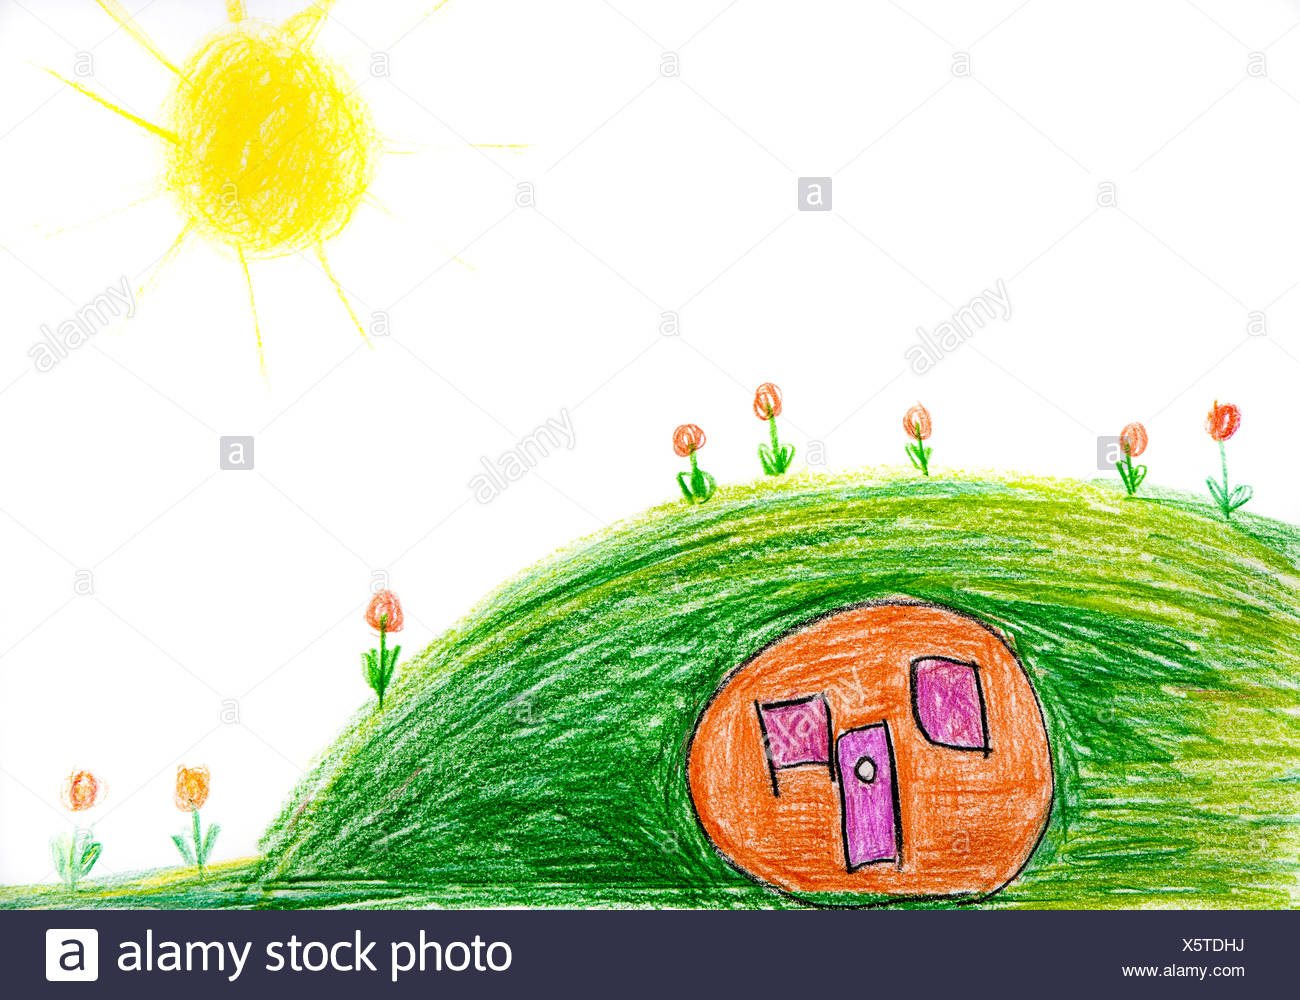 Child's drawing, hill and camper - Stock Image